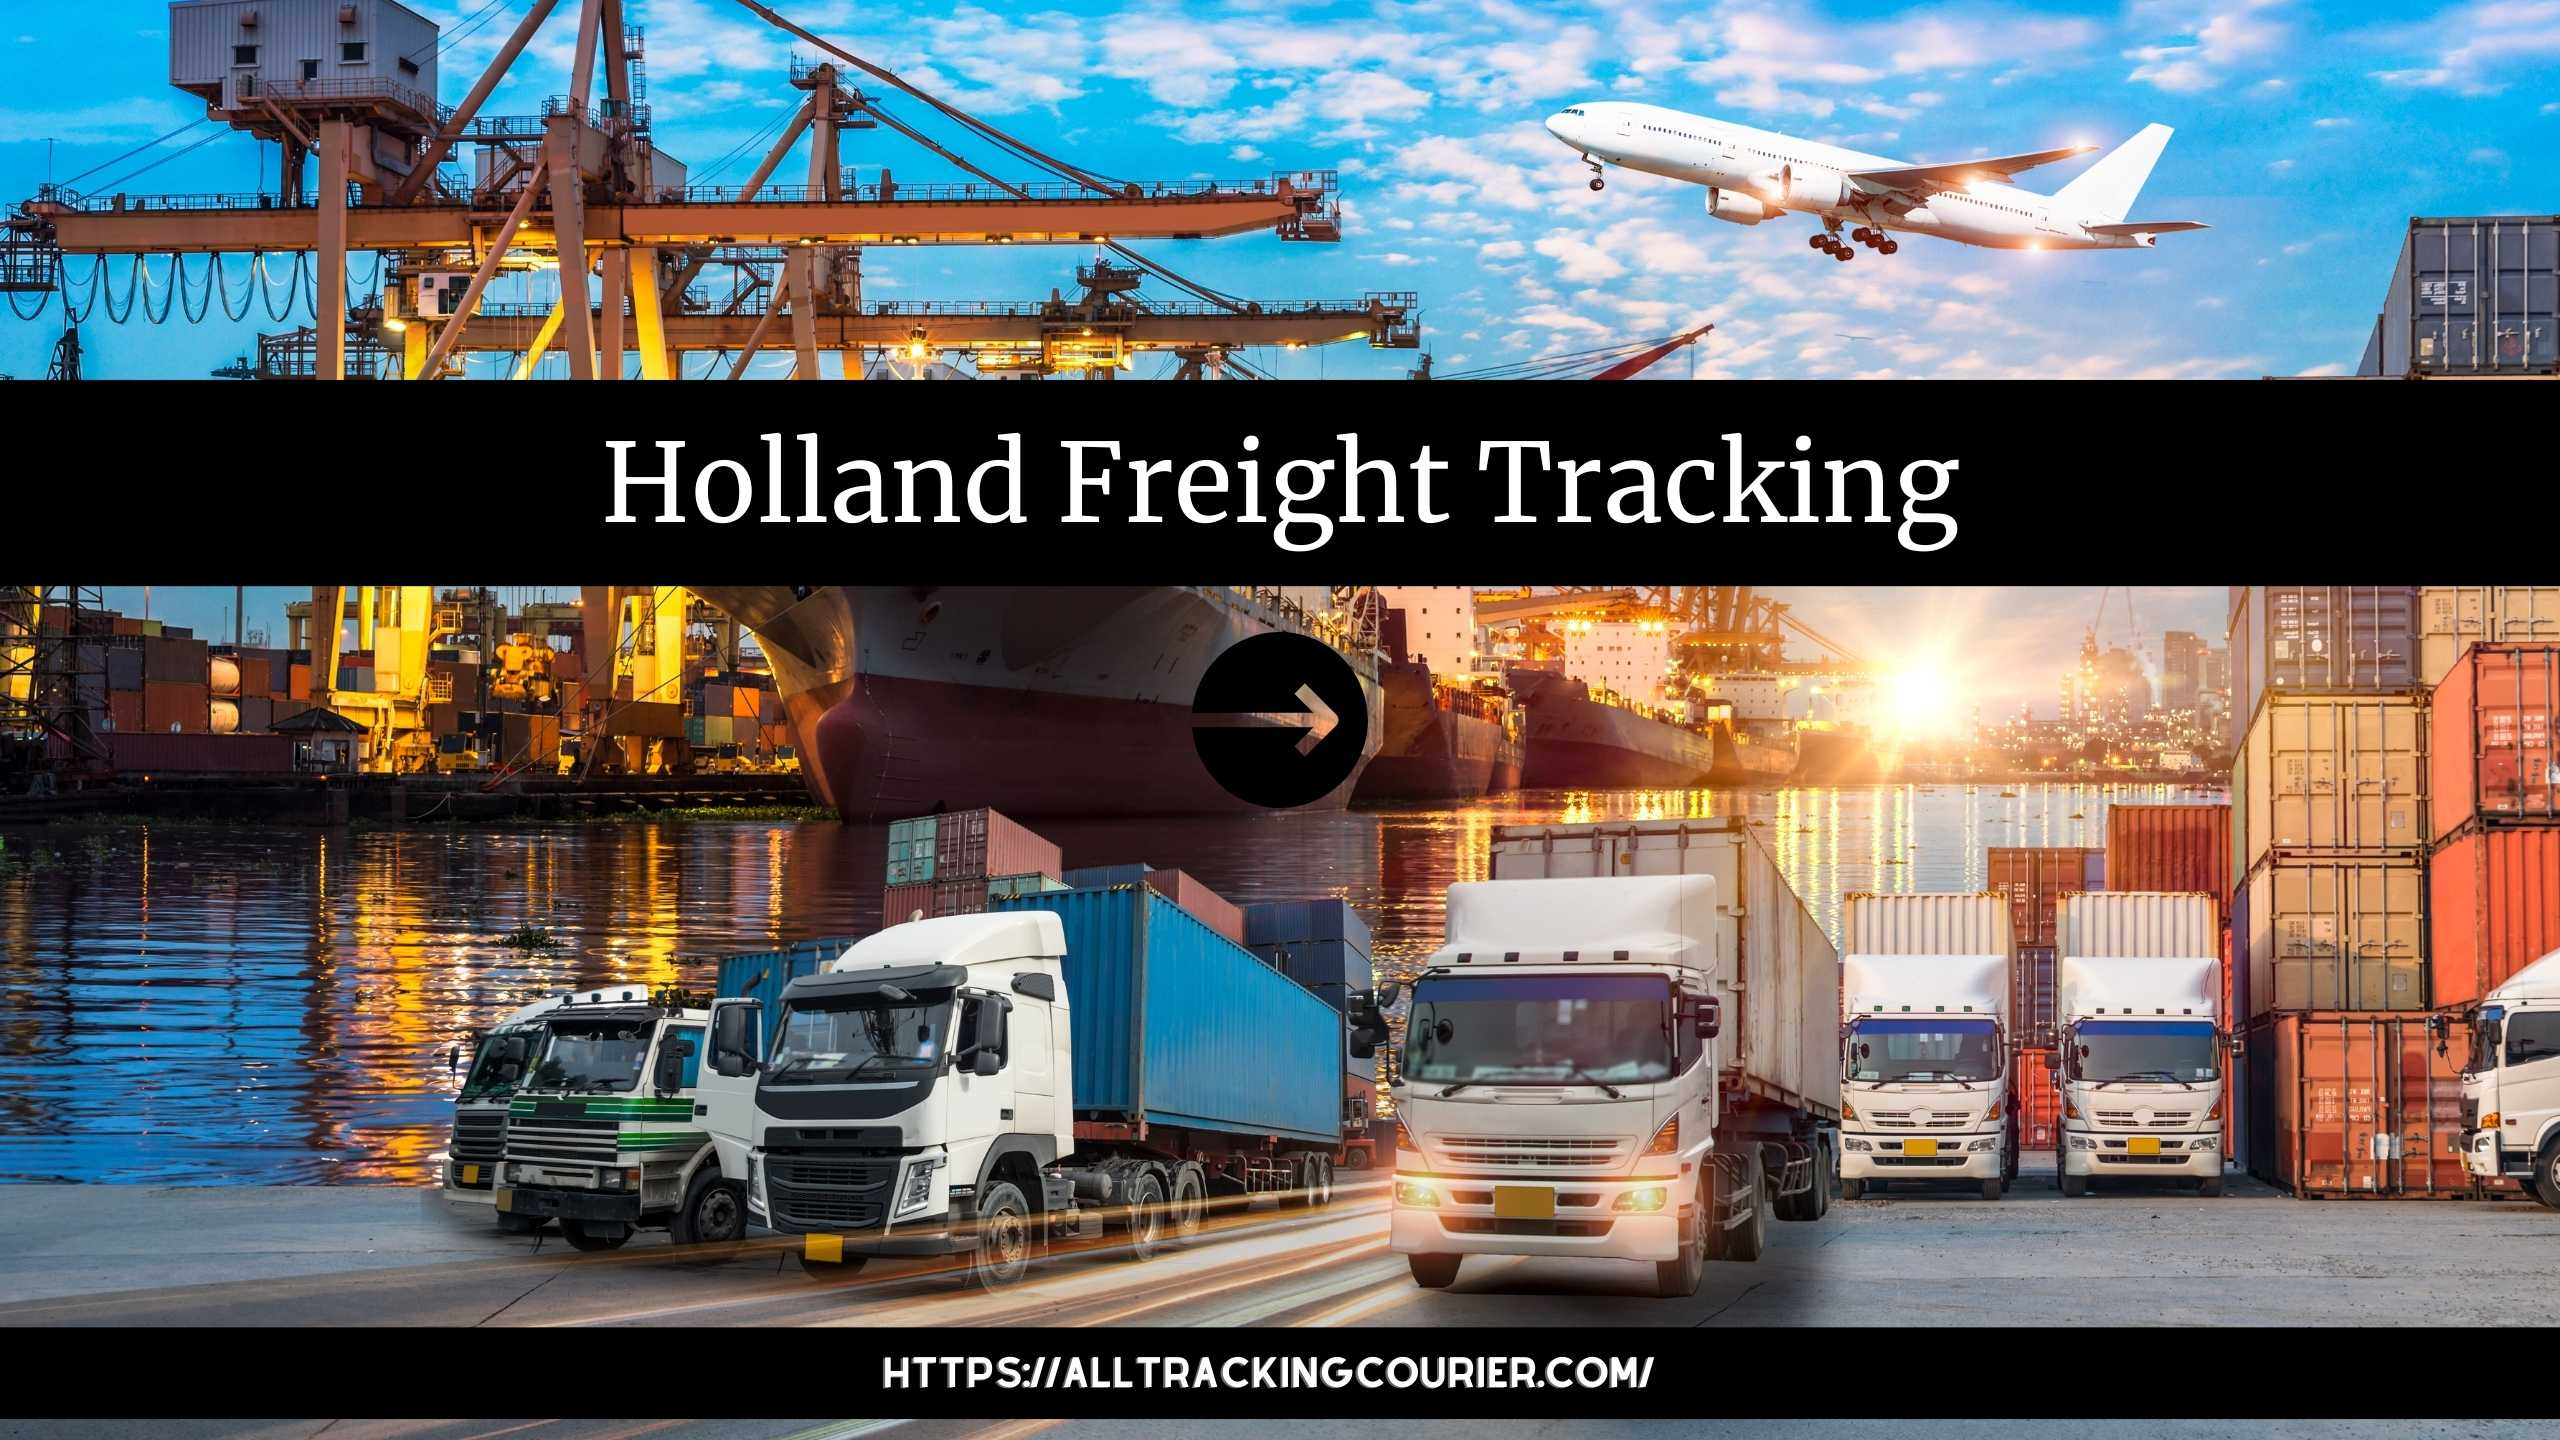 Holland Freight Tracking - Track Your Packages Live